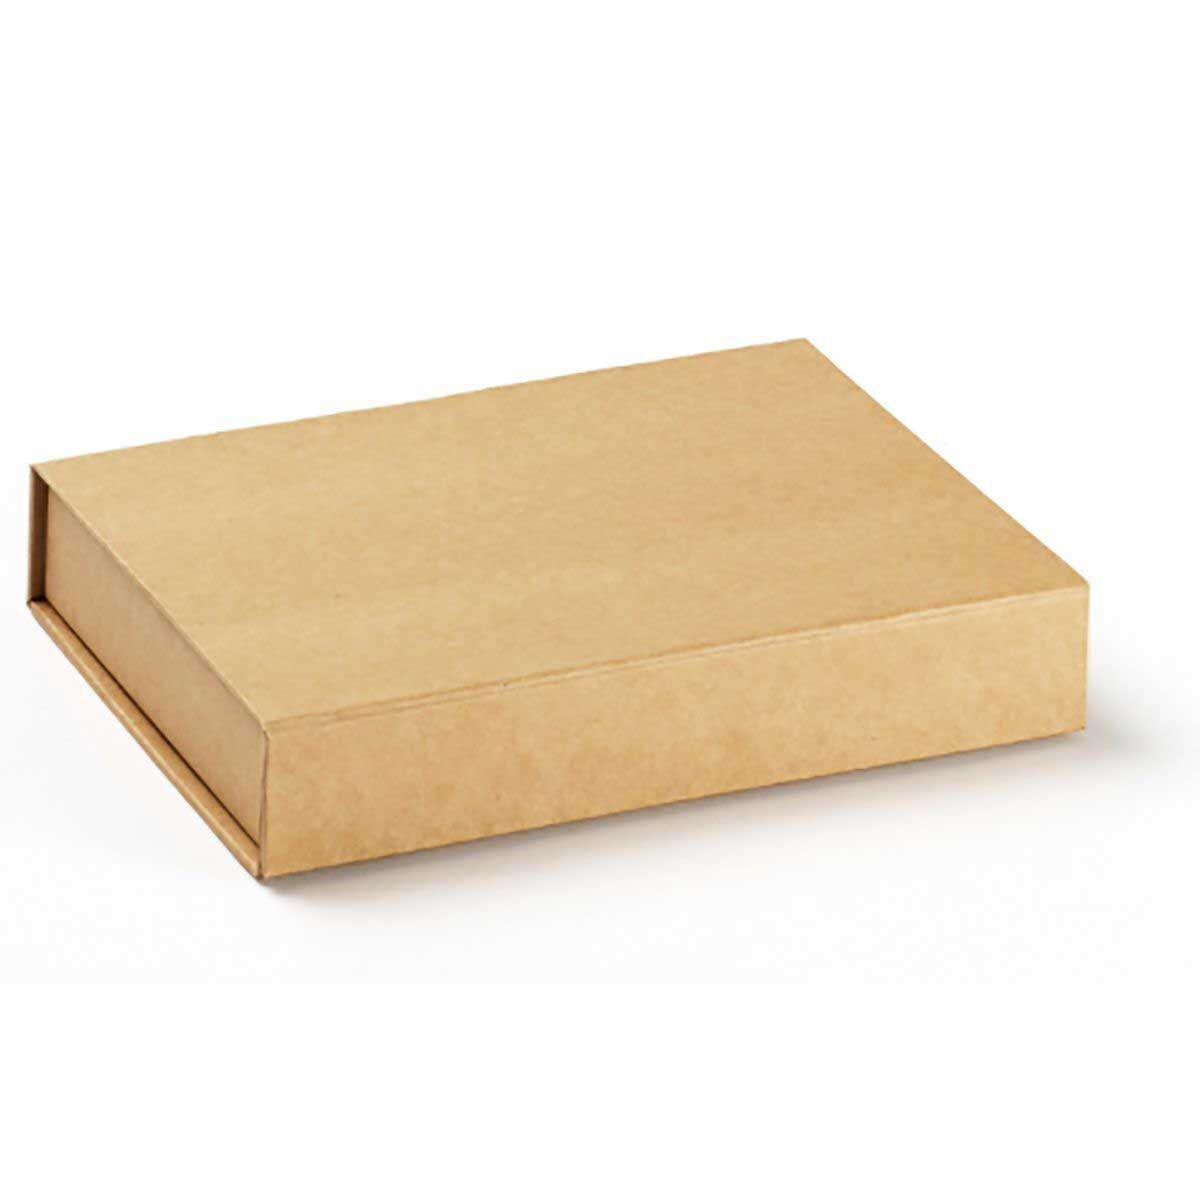 Colompac Postal Wrap A5 Box Pack of 20